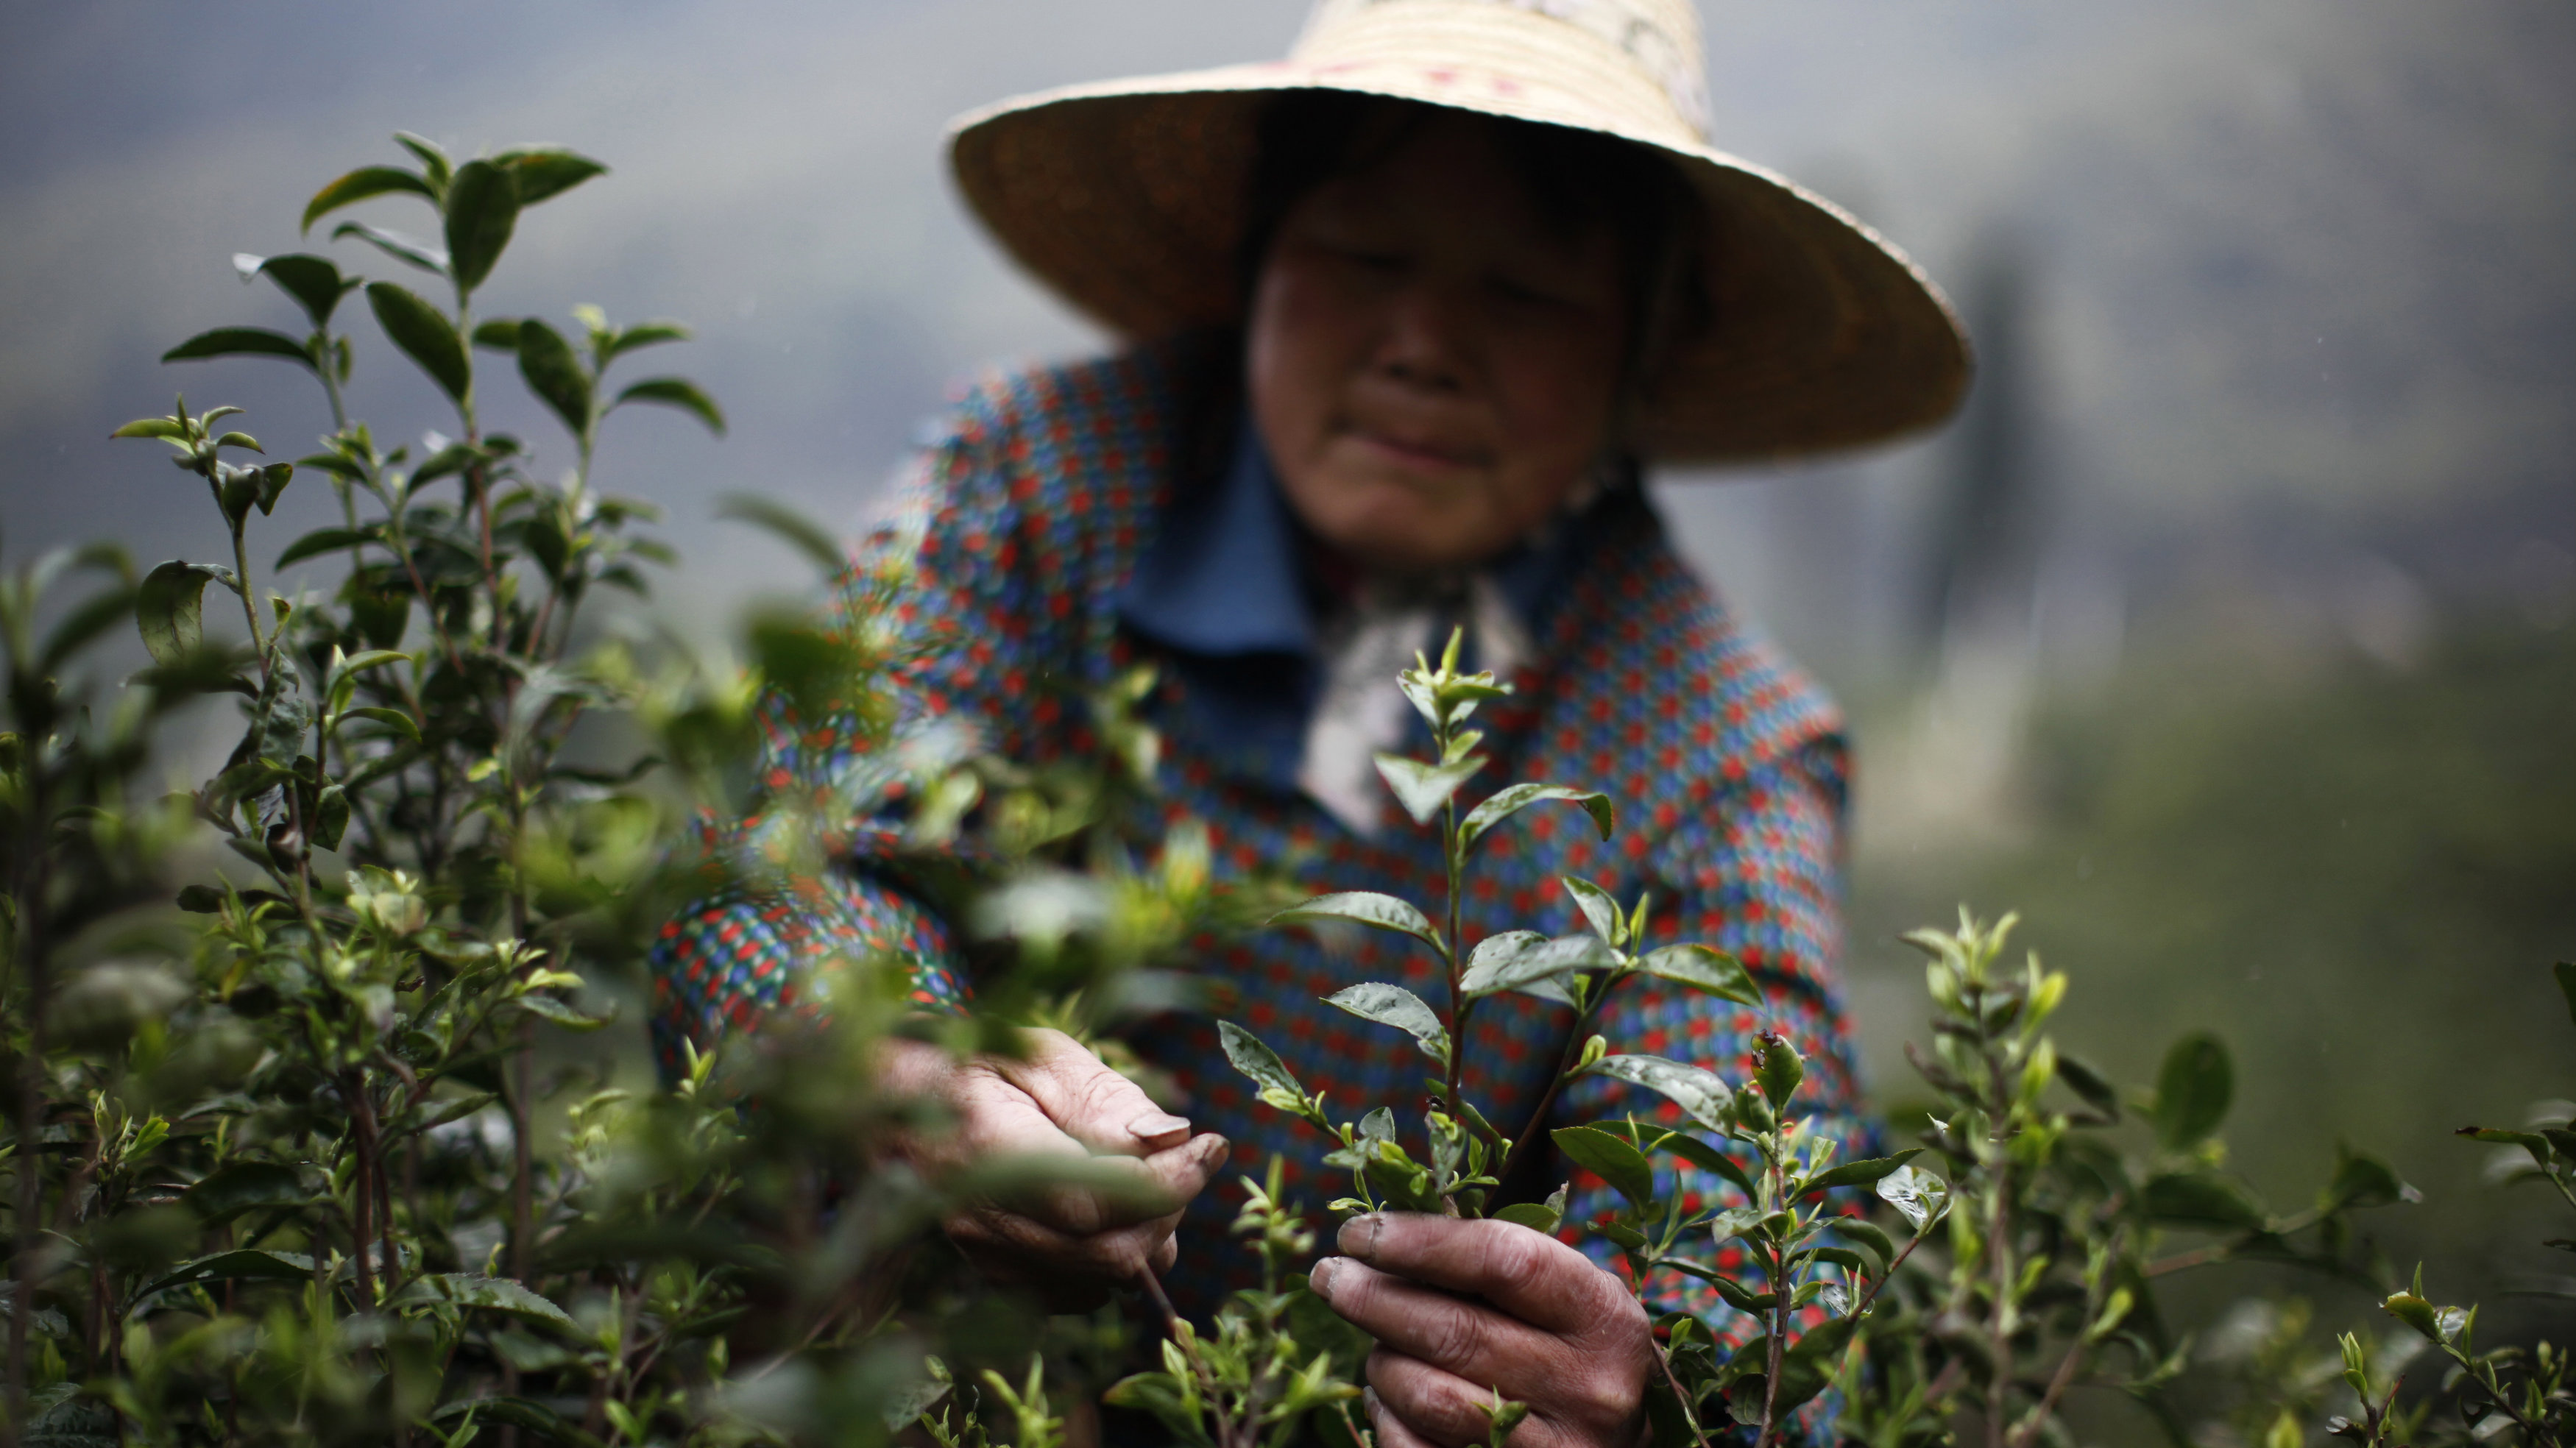 A woman picks tea leaves at a tea plantation in Moganshan, Zhejiang province April 9, 2012. China is the world's largest tea producing country with an output of 1.4 million tonnes and a 33 percent share of the world's total. Moganshan's tea is among the most famous and aromatic teas in China.